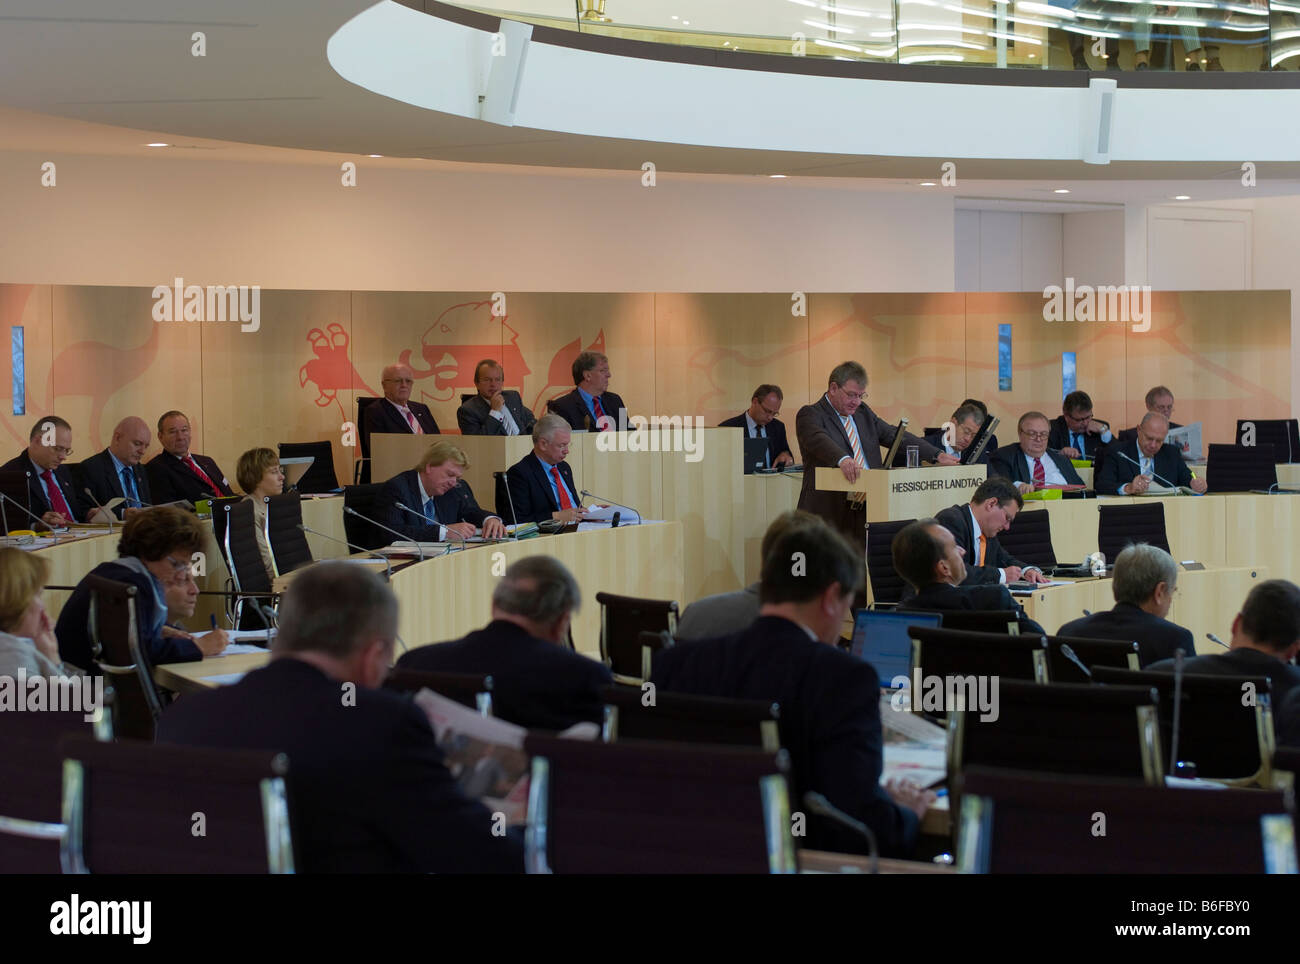 Delegates in the Plenarsaal or plenary assembly hall of the Hessian Landtag, Parliament, Wiesbaden, Hesse, Germany, - Stock Image